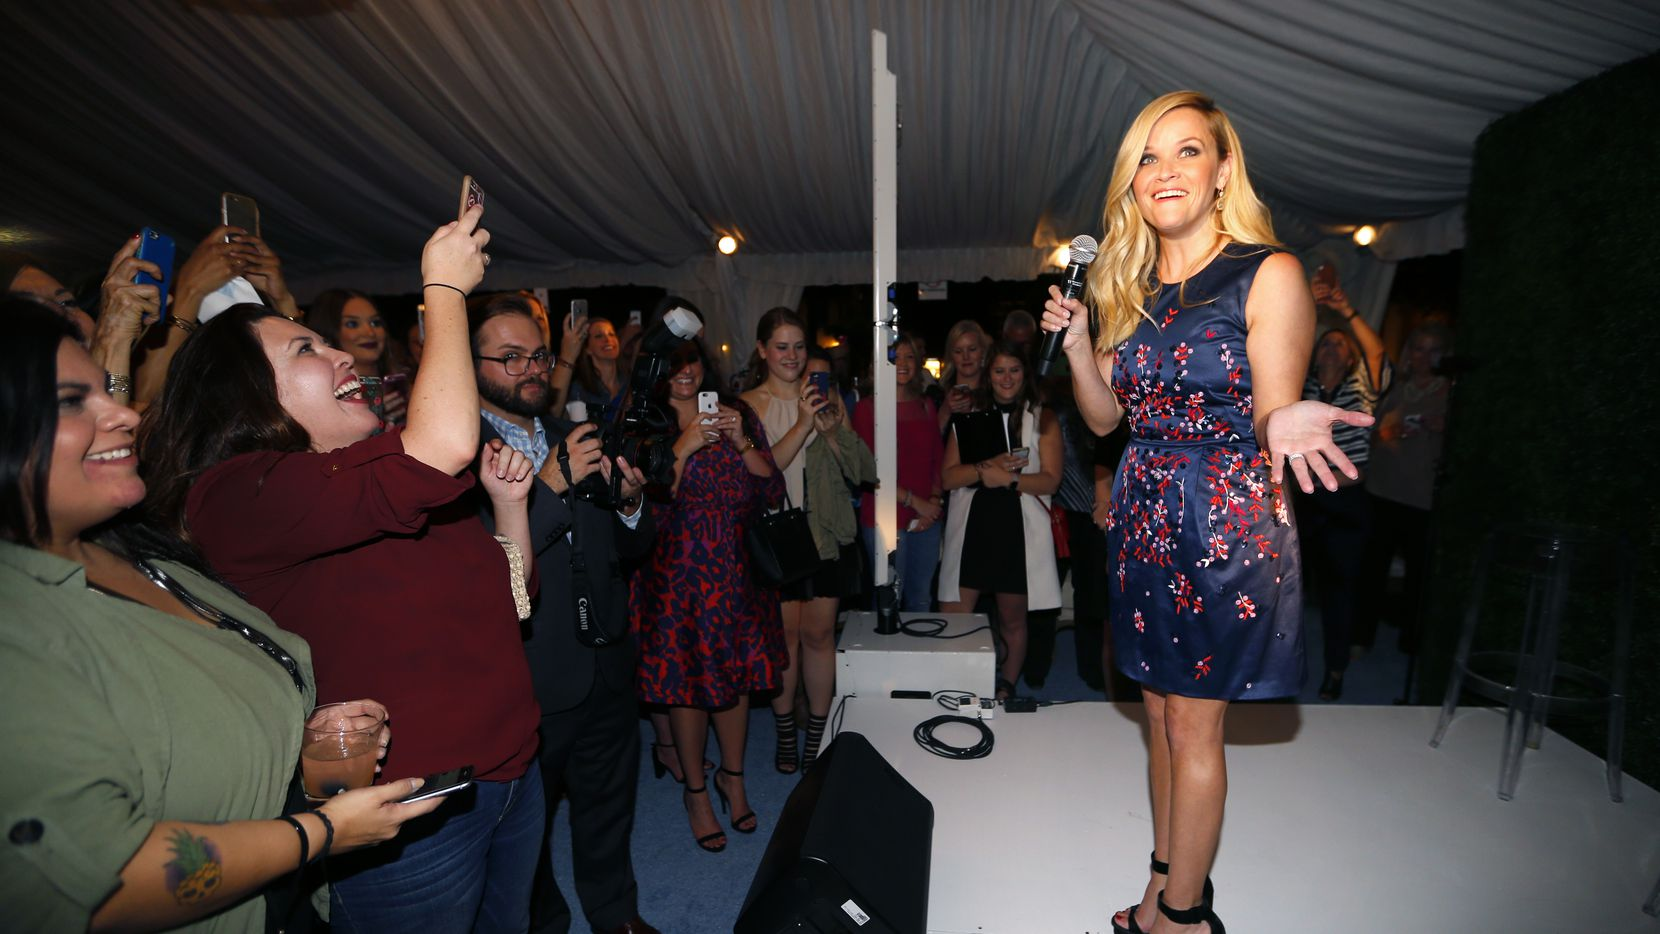 Oscar-winning actress Reese Witherspoon made an appearance at the opening of her second Draper James store, this one in Highland Village in Dallas, Wednesday, September 28, 2016.